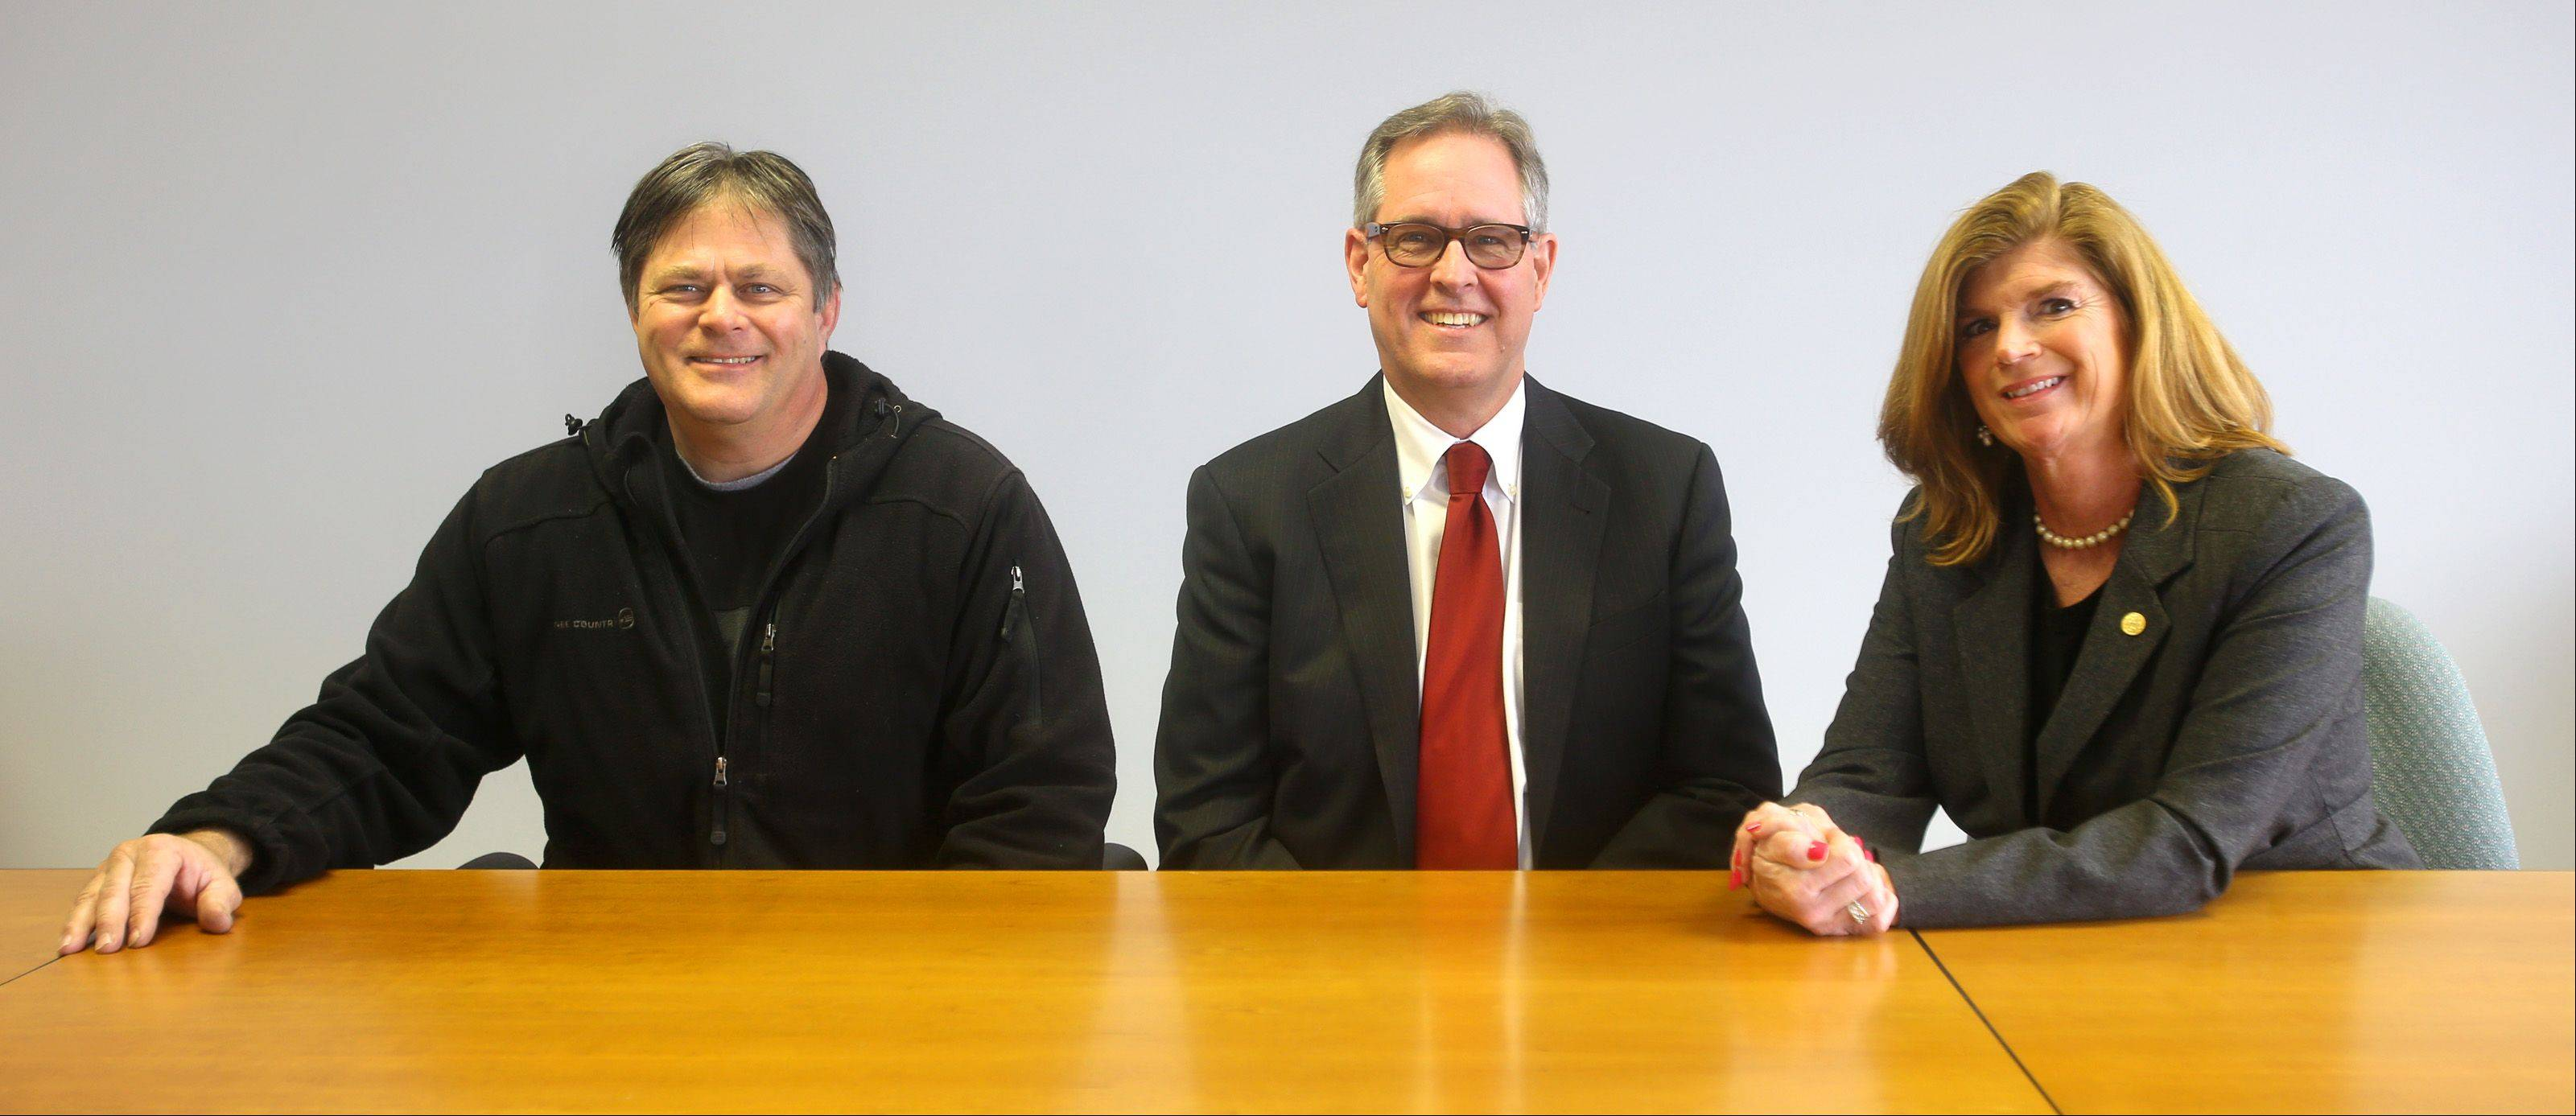 "Michael ""Big Mike"" Strick, Charles ""Chuck"" Maher and Suzanne Hart, all of Naperville, are running for the Republican nomination to represent District 11 on the Will County Board in the March 18 primary election."